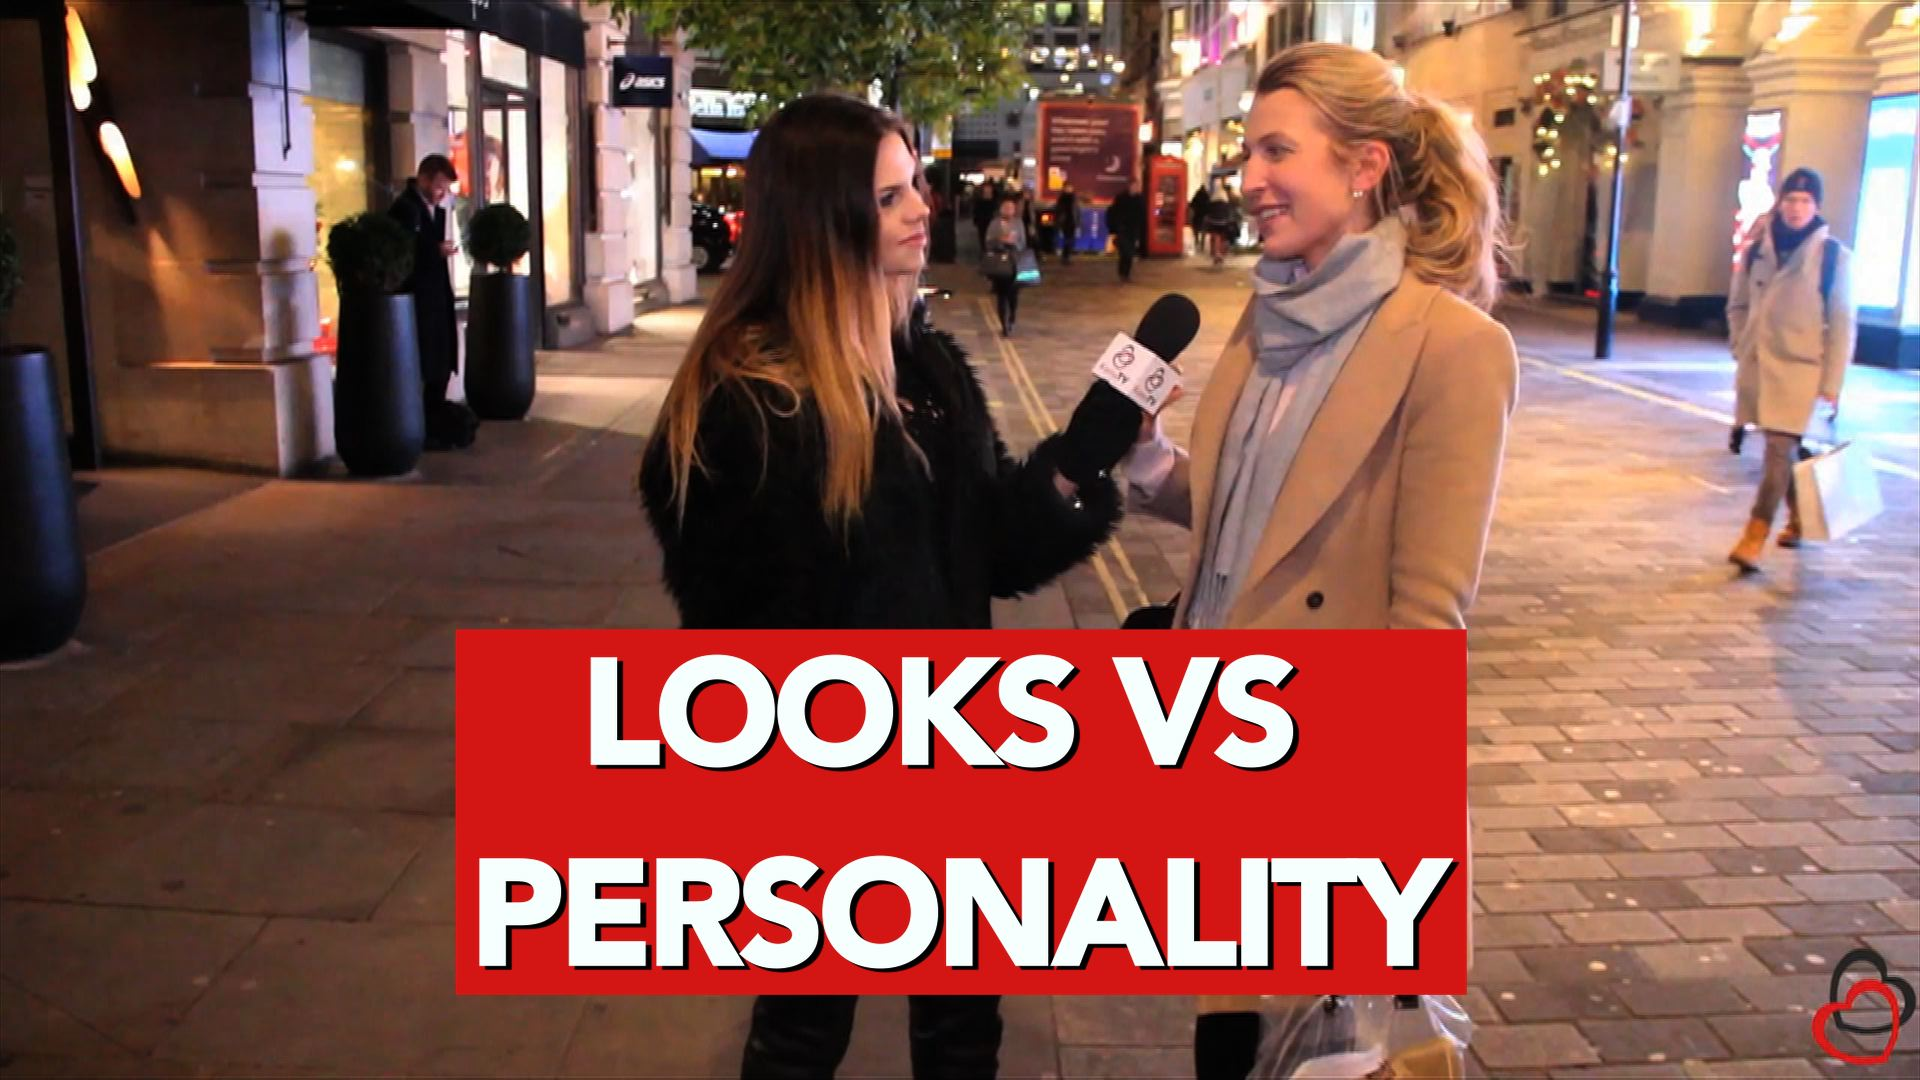 Looks vs Personality What do women want